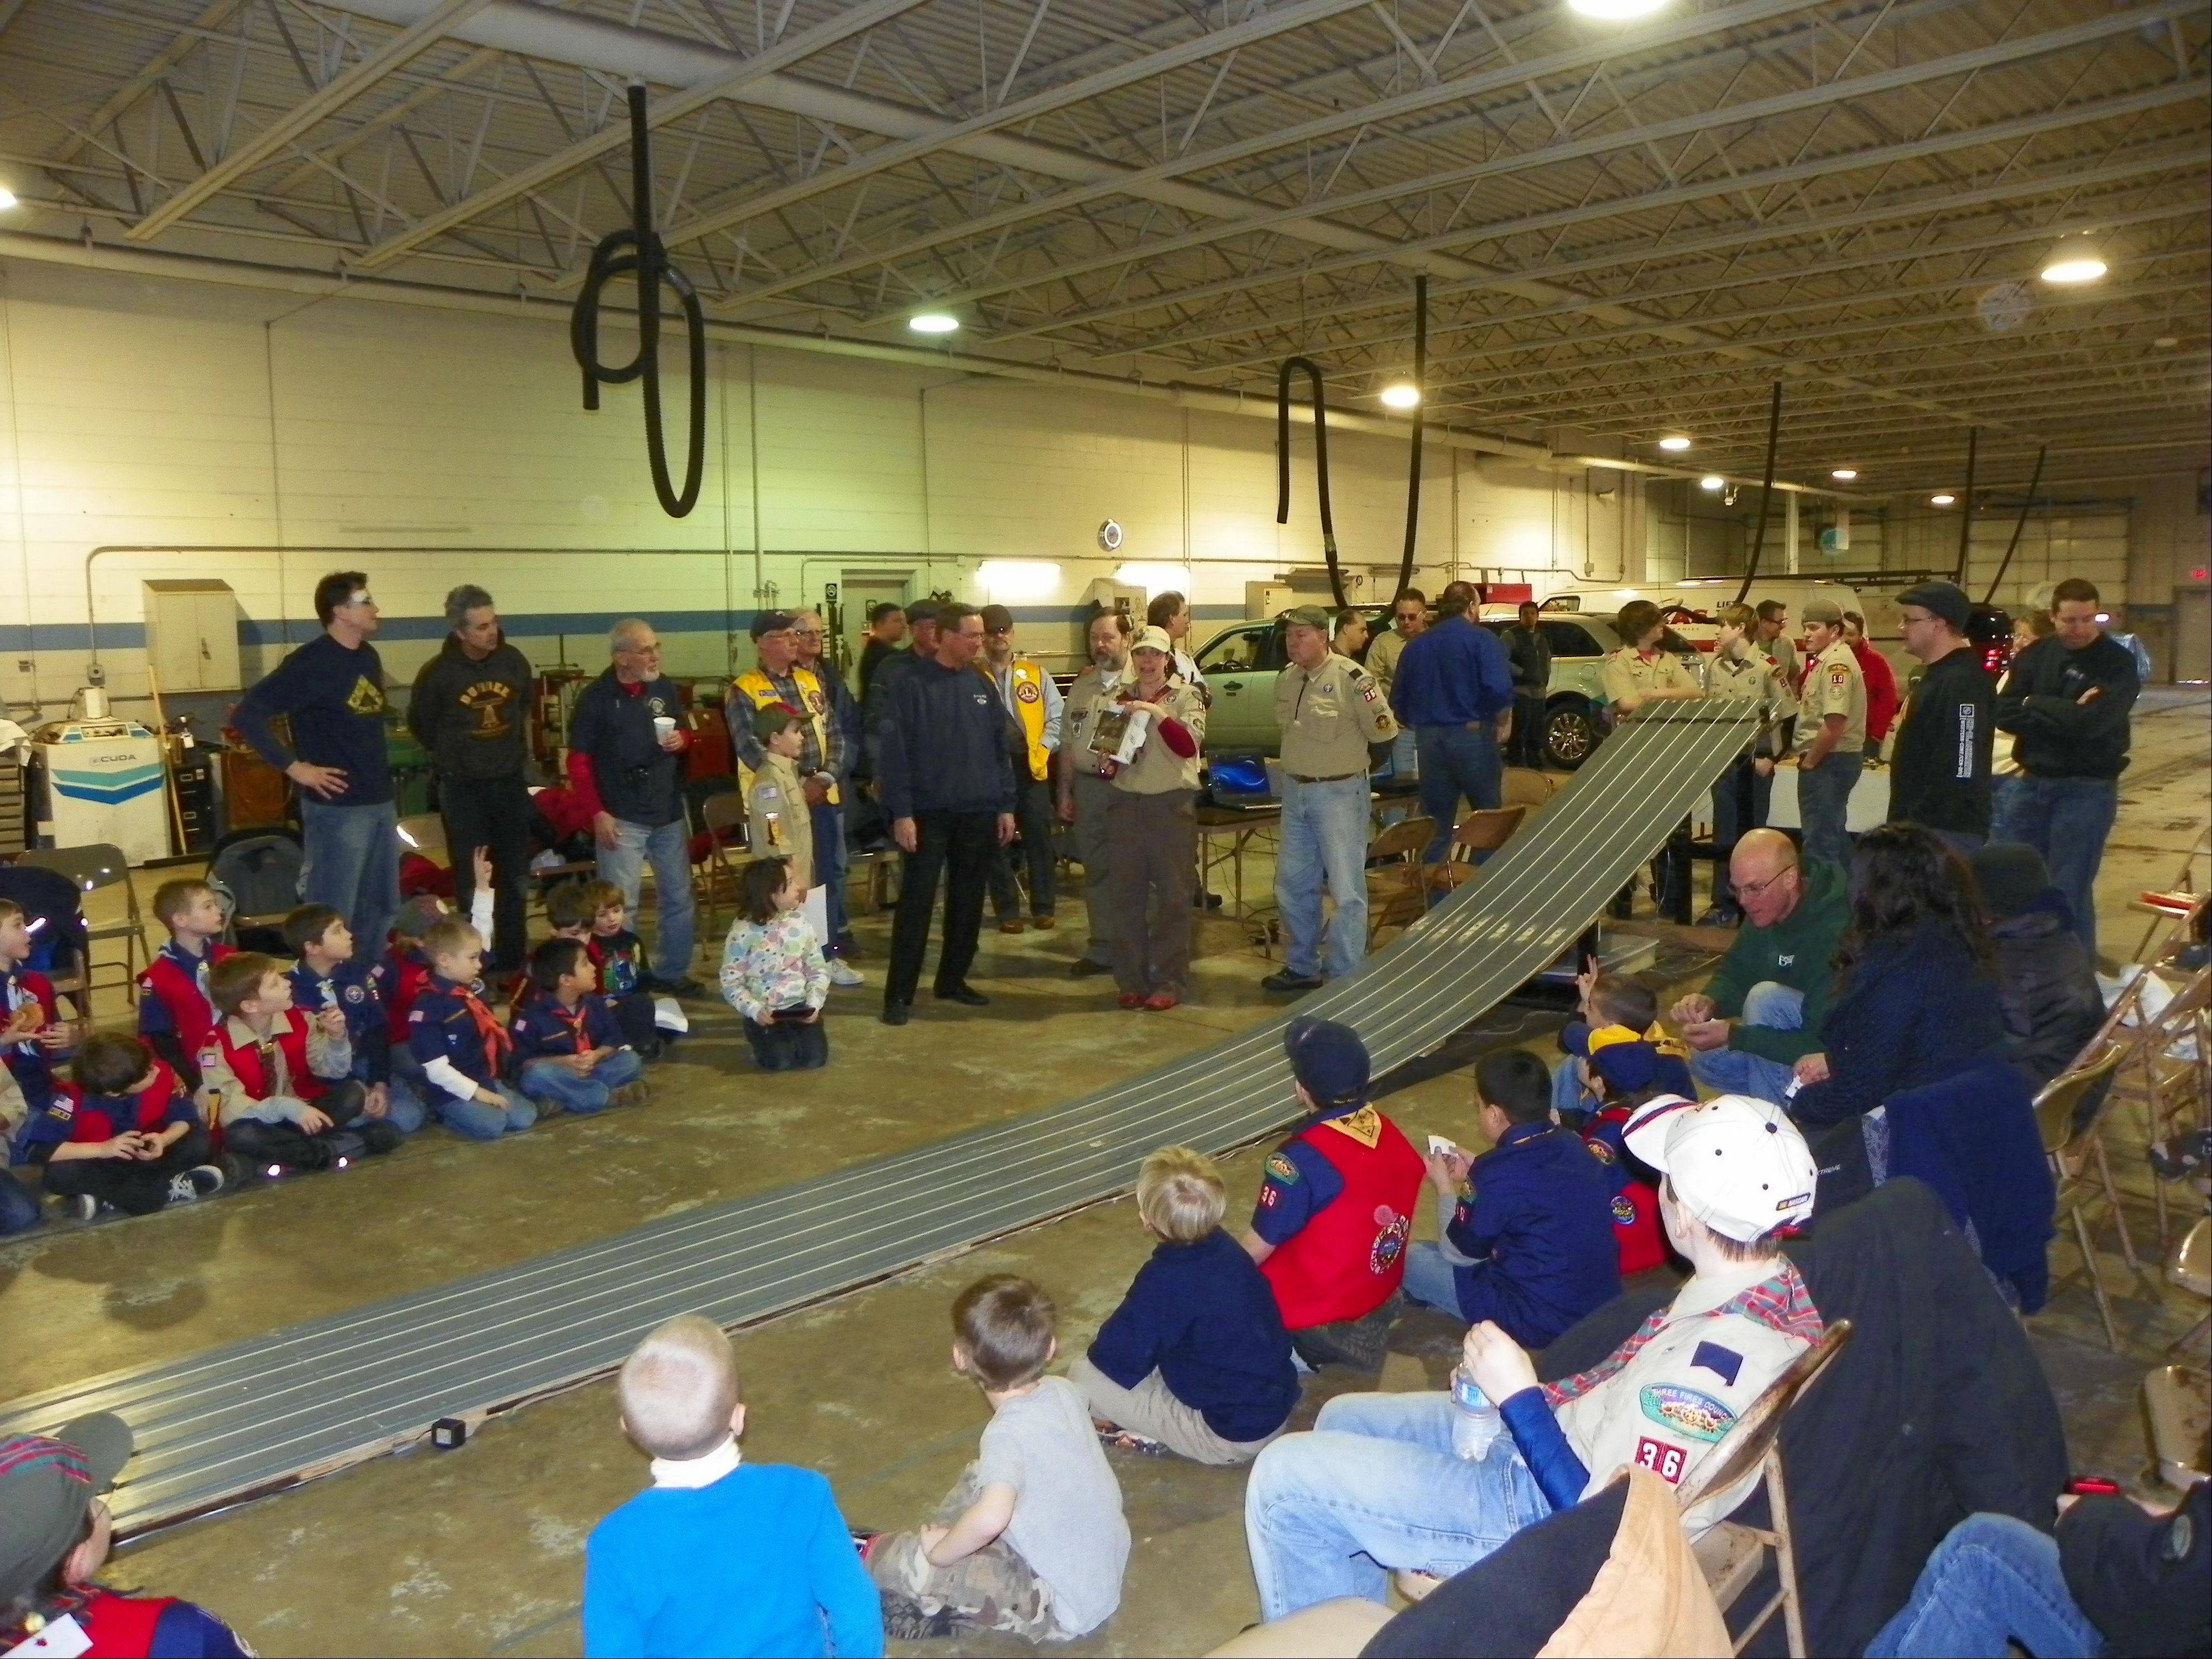 West Dundee's Cub Scout Pack 36 will compete in its annual Pinewood Derby at Spring Hill Ford in East Dundee.